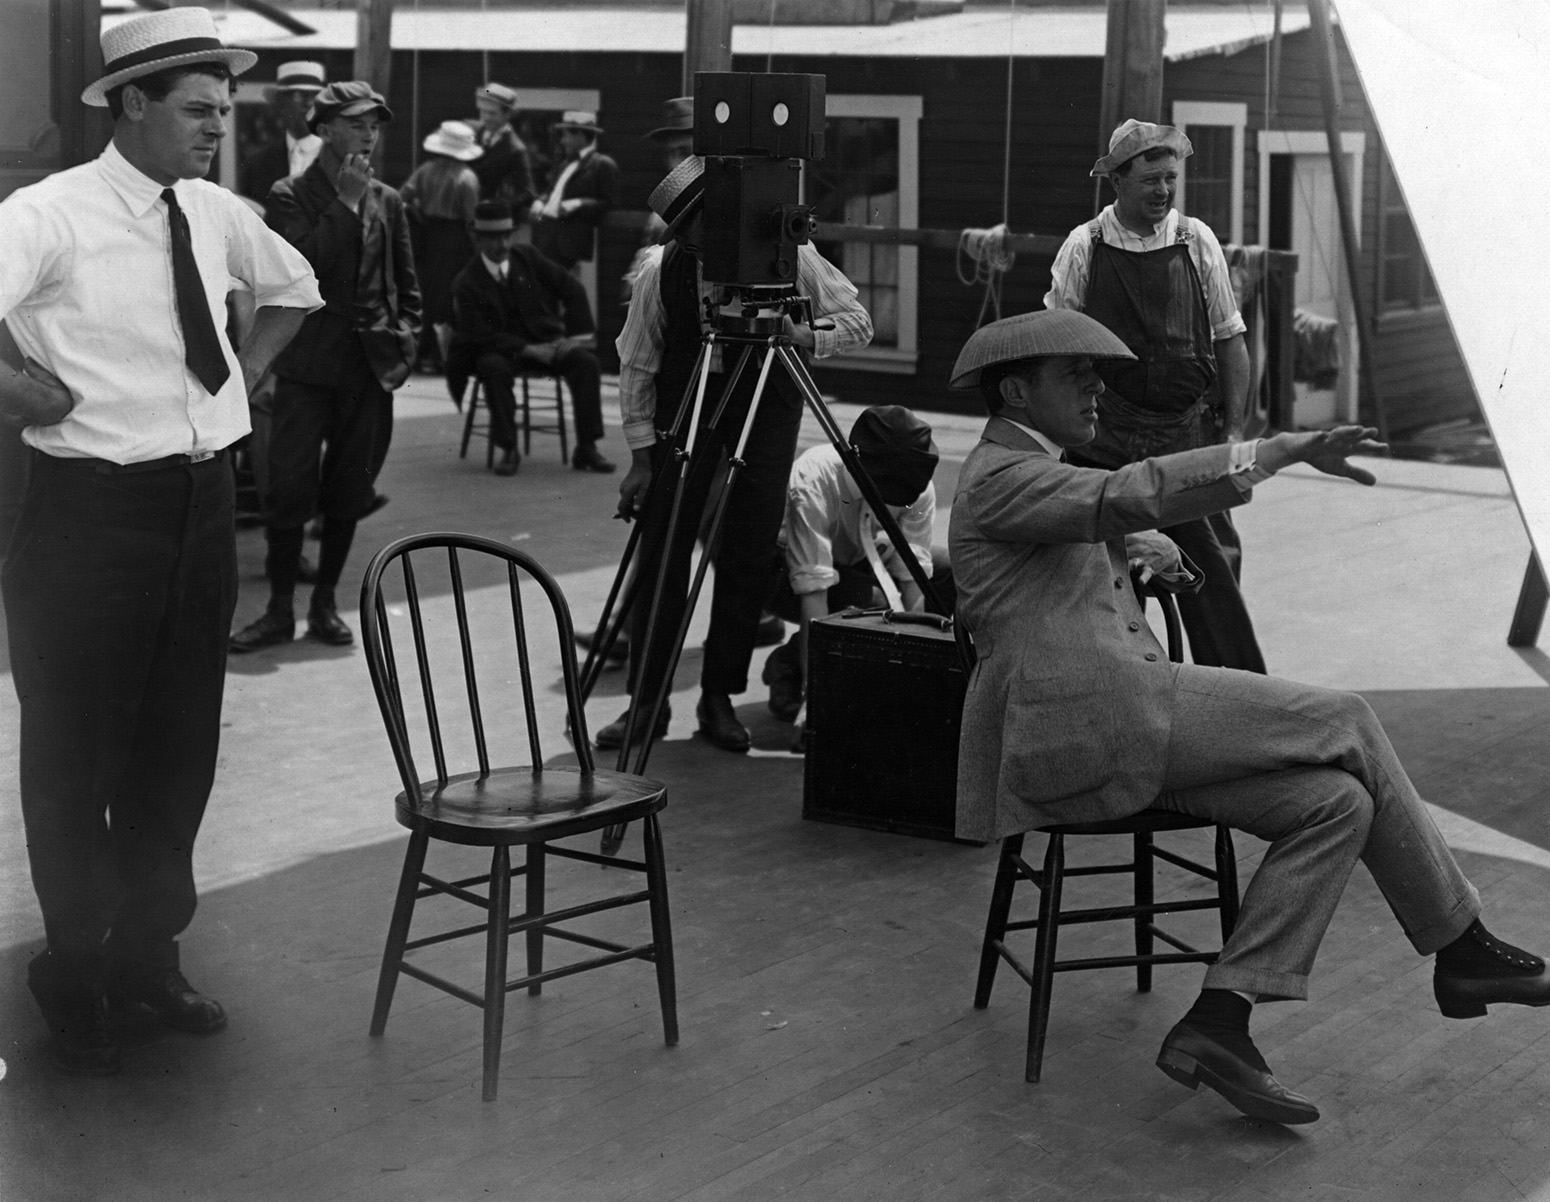 D.W. Griffith and cinematographer Billy Bitzer at work on Intolerance. (Credit: Margaret Herrick Library)